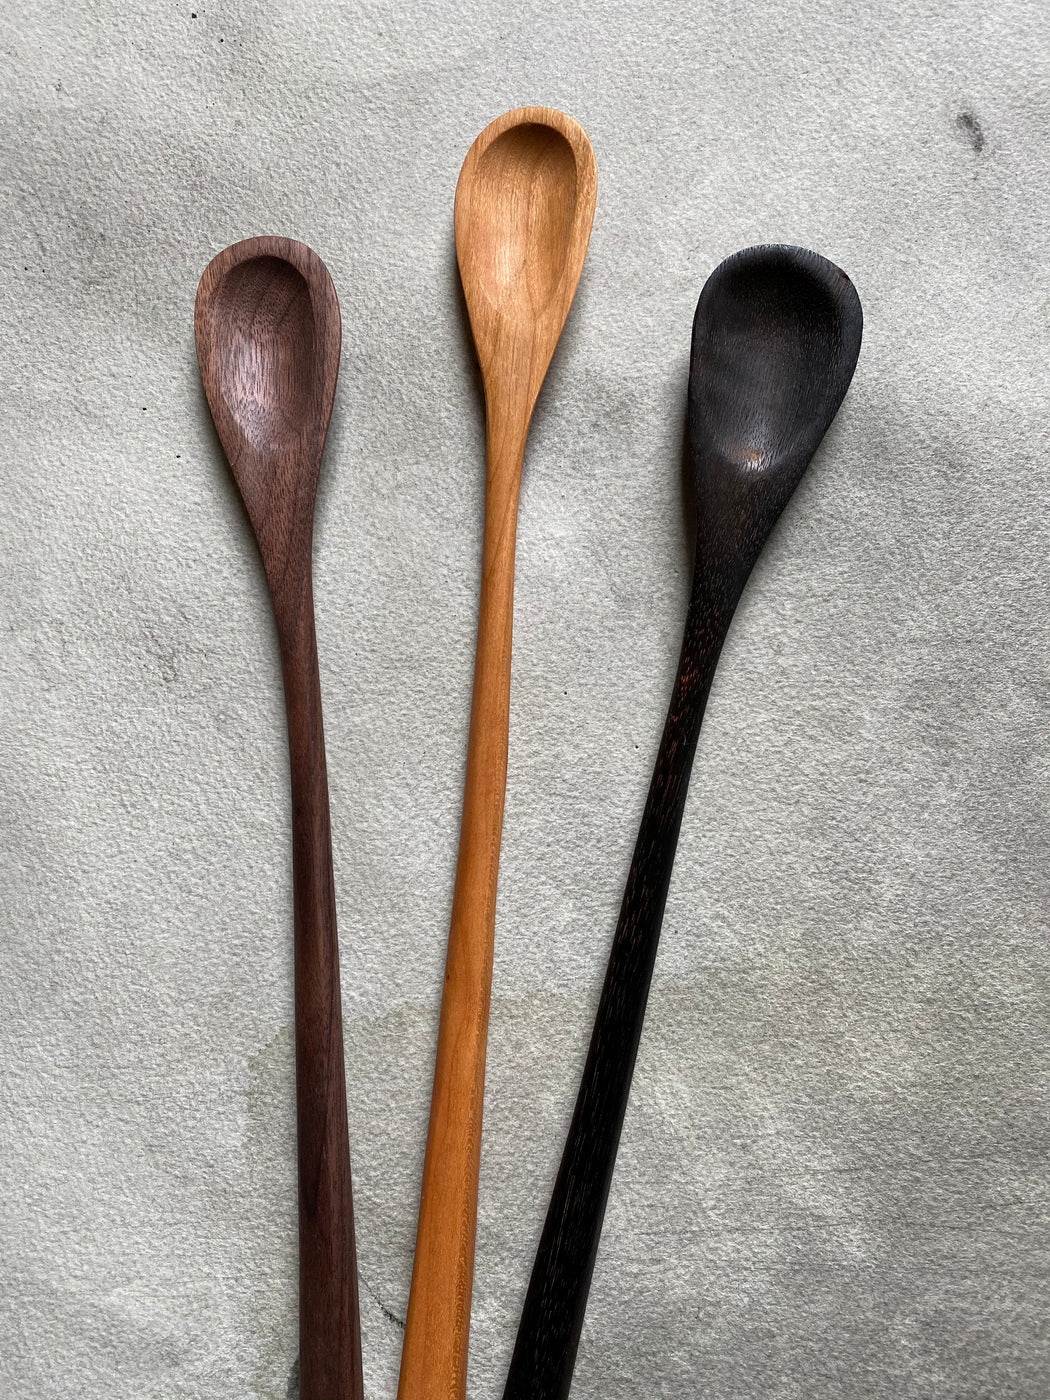 Hand-Carved Stir Spoon - Charred Maple